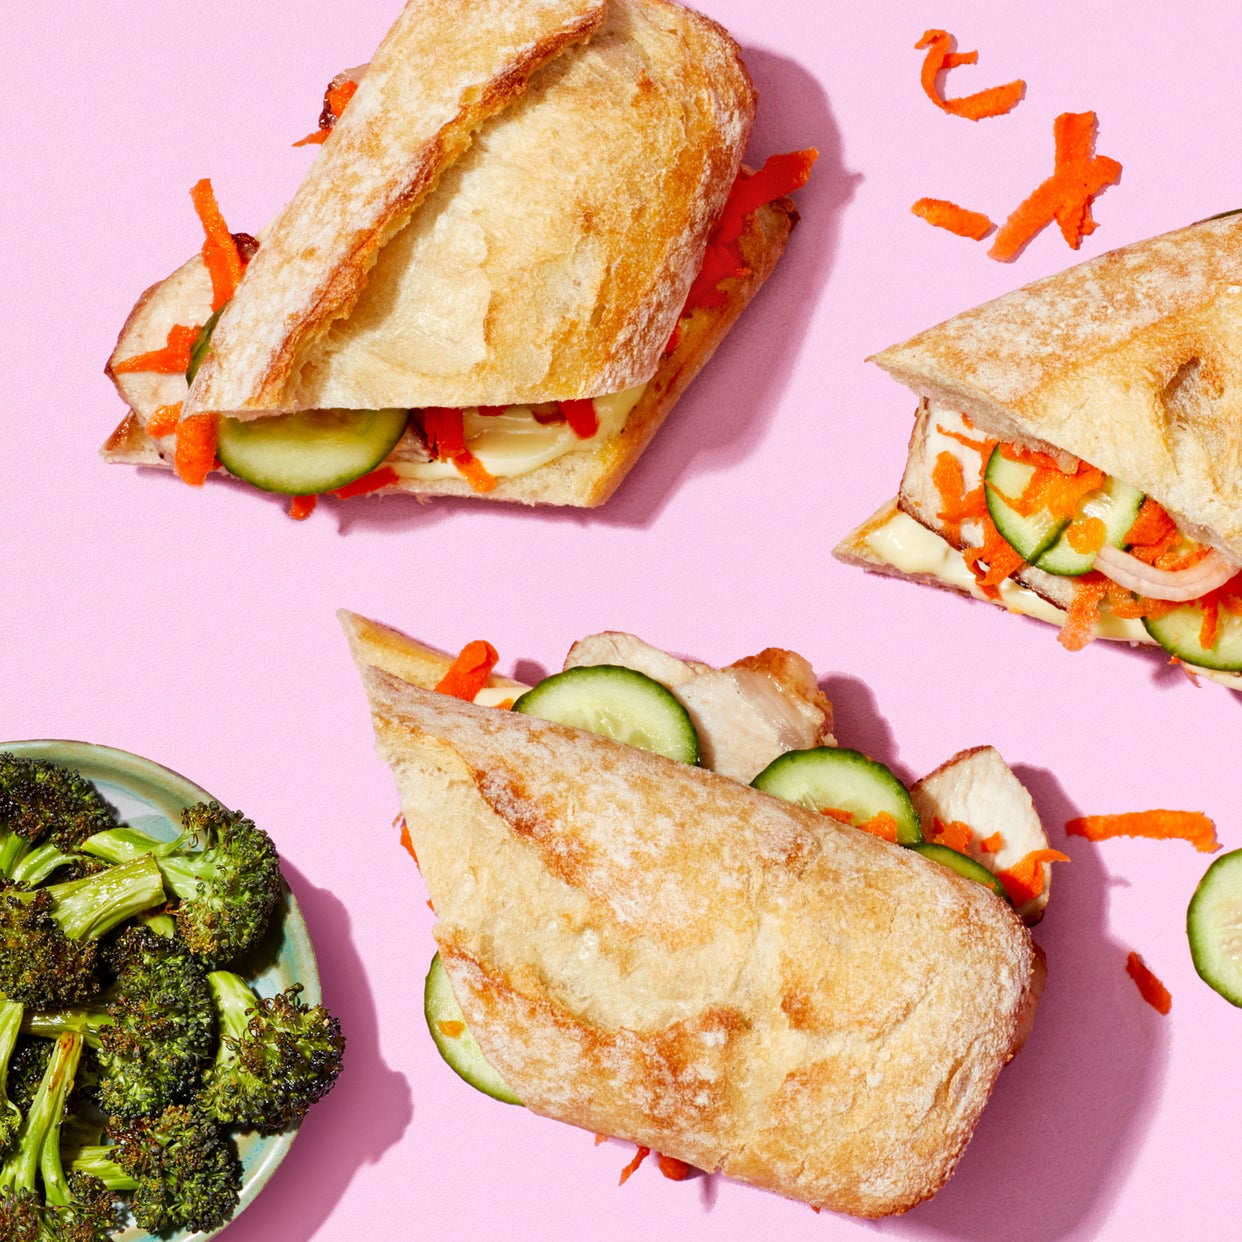 Chrissy Teigen's Pork Bánh Mì with Quick Pickles & Roasted Broccoli